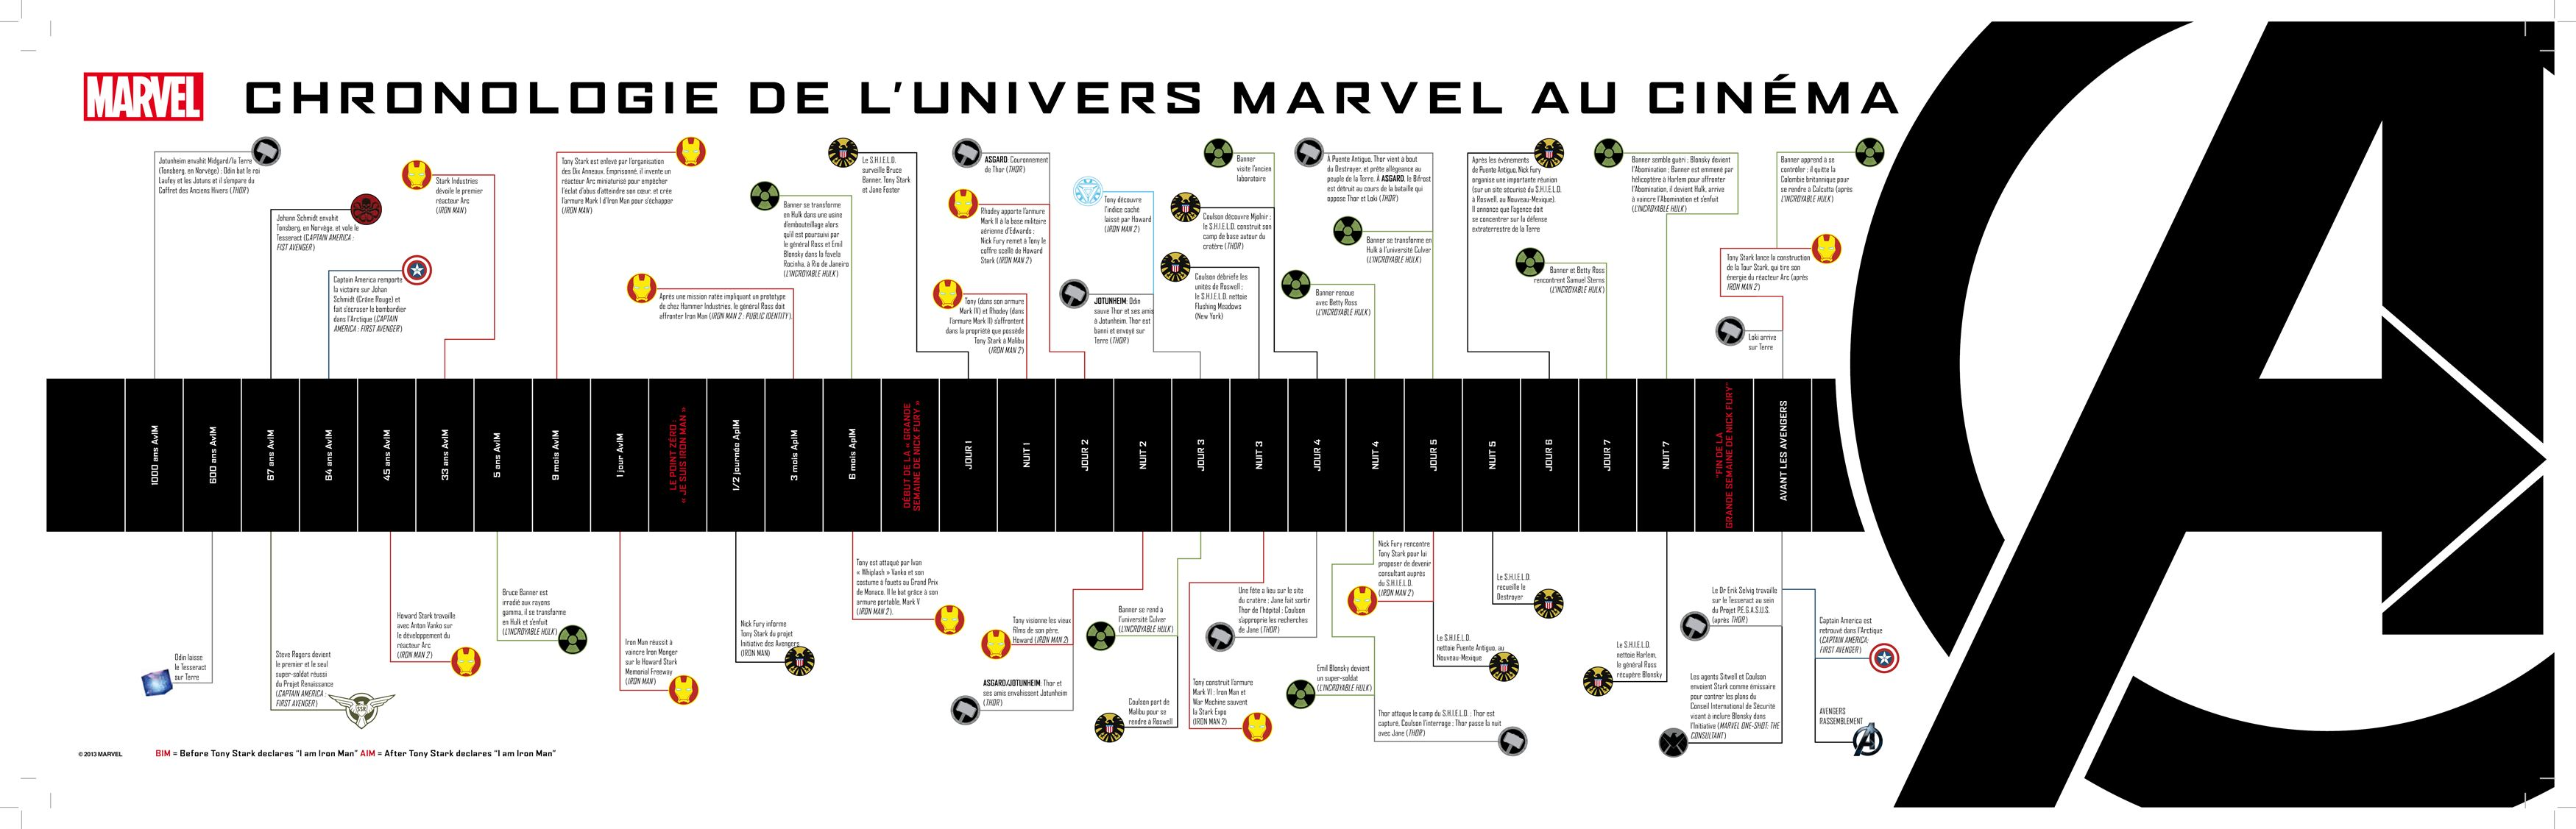 chronologie-des-films-marvel